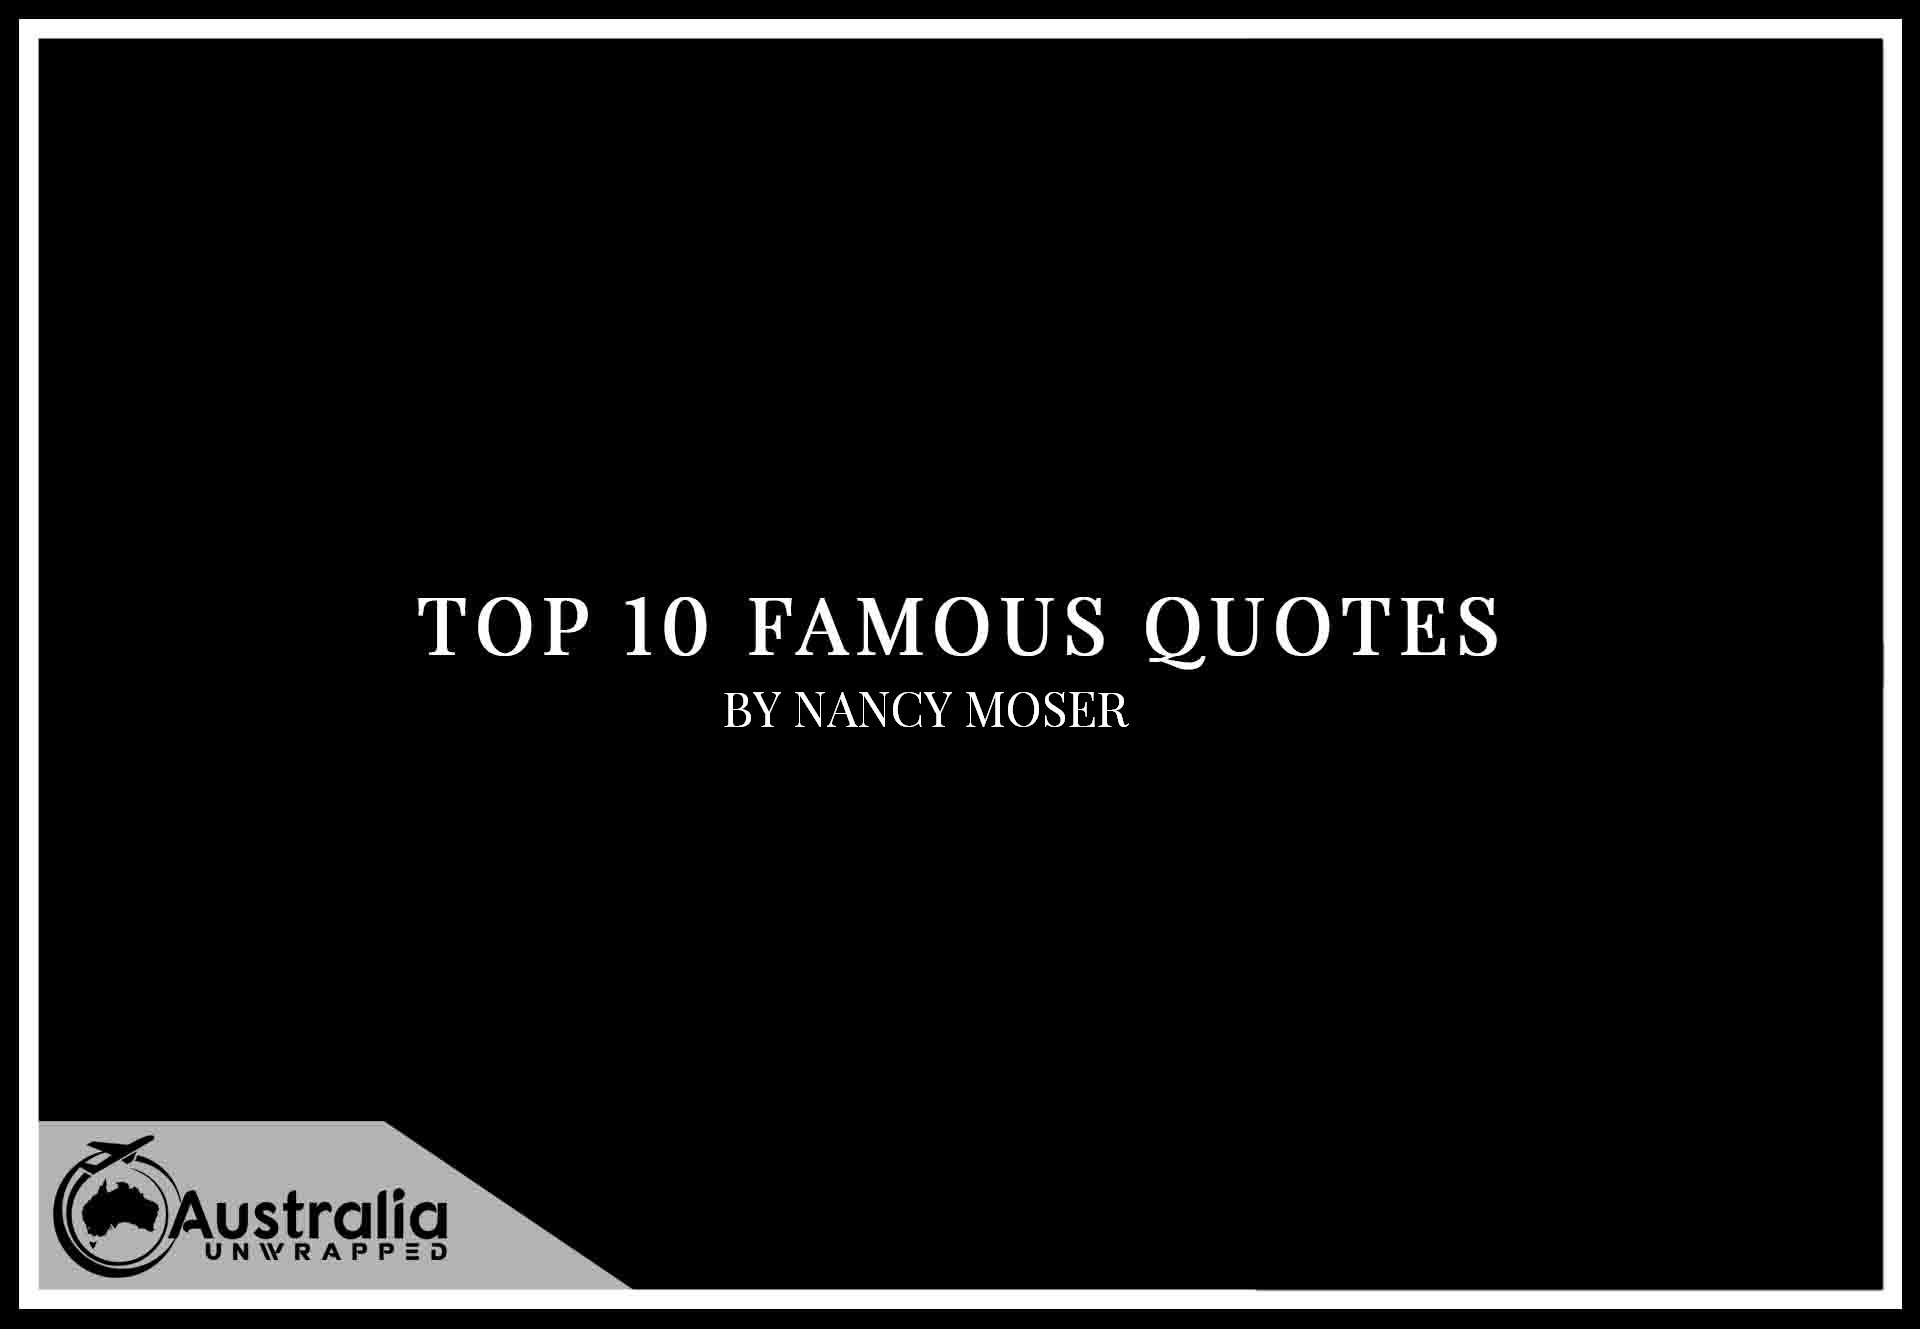 Top 10 Famous Quotes by Author Nancy Moser